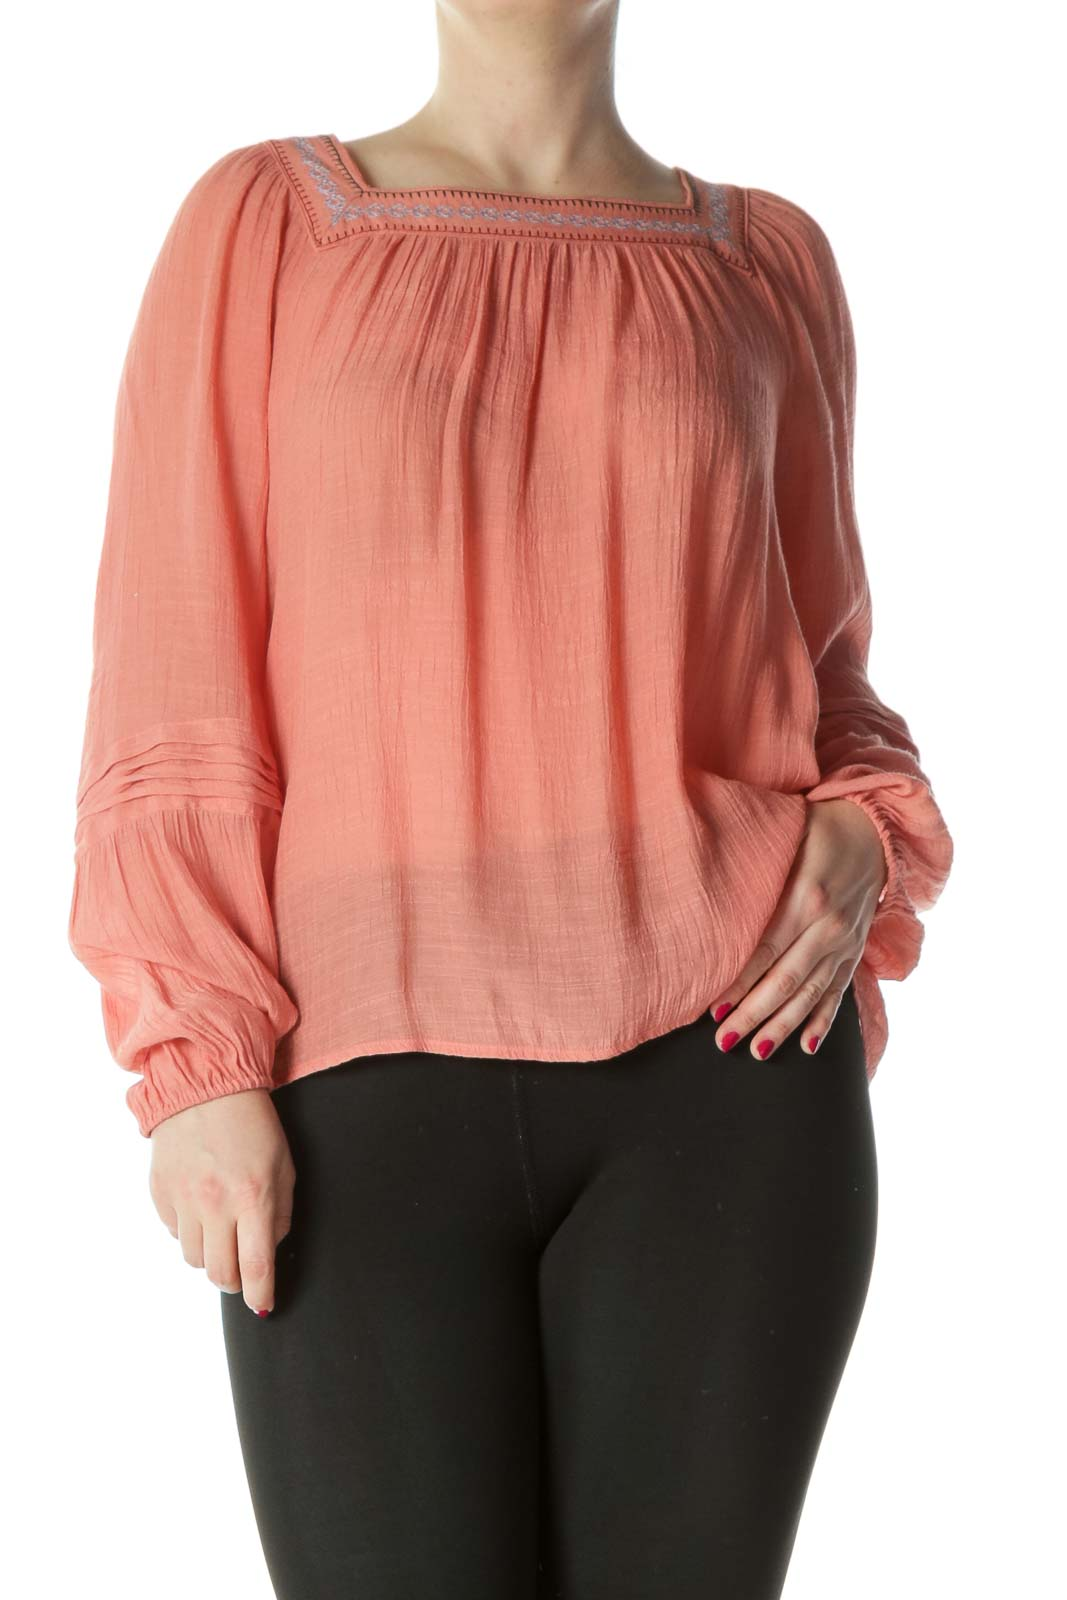 Peach/Green/Gray Embroidered-Neckline Flared Long-Sleeve Top